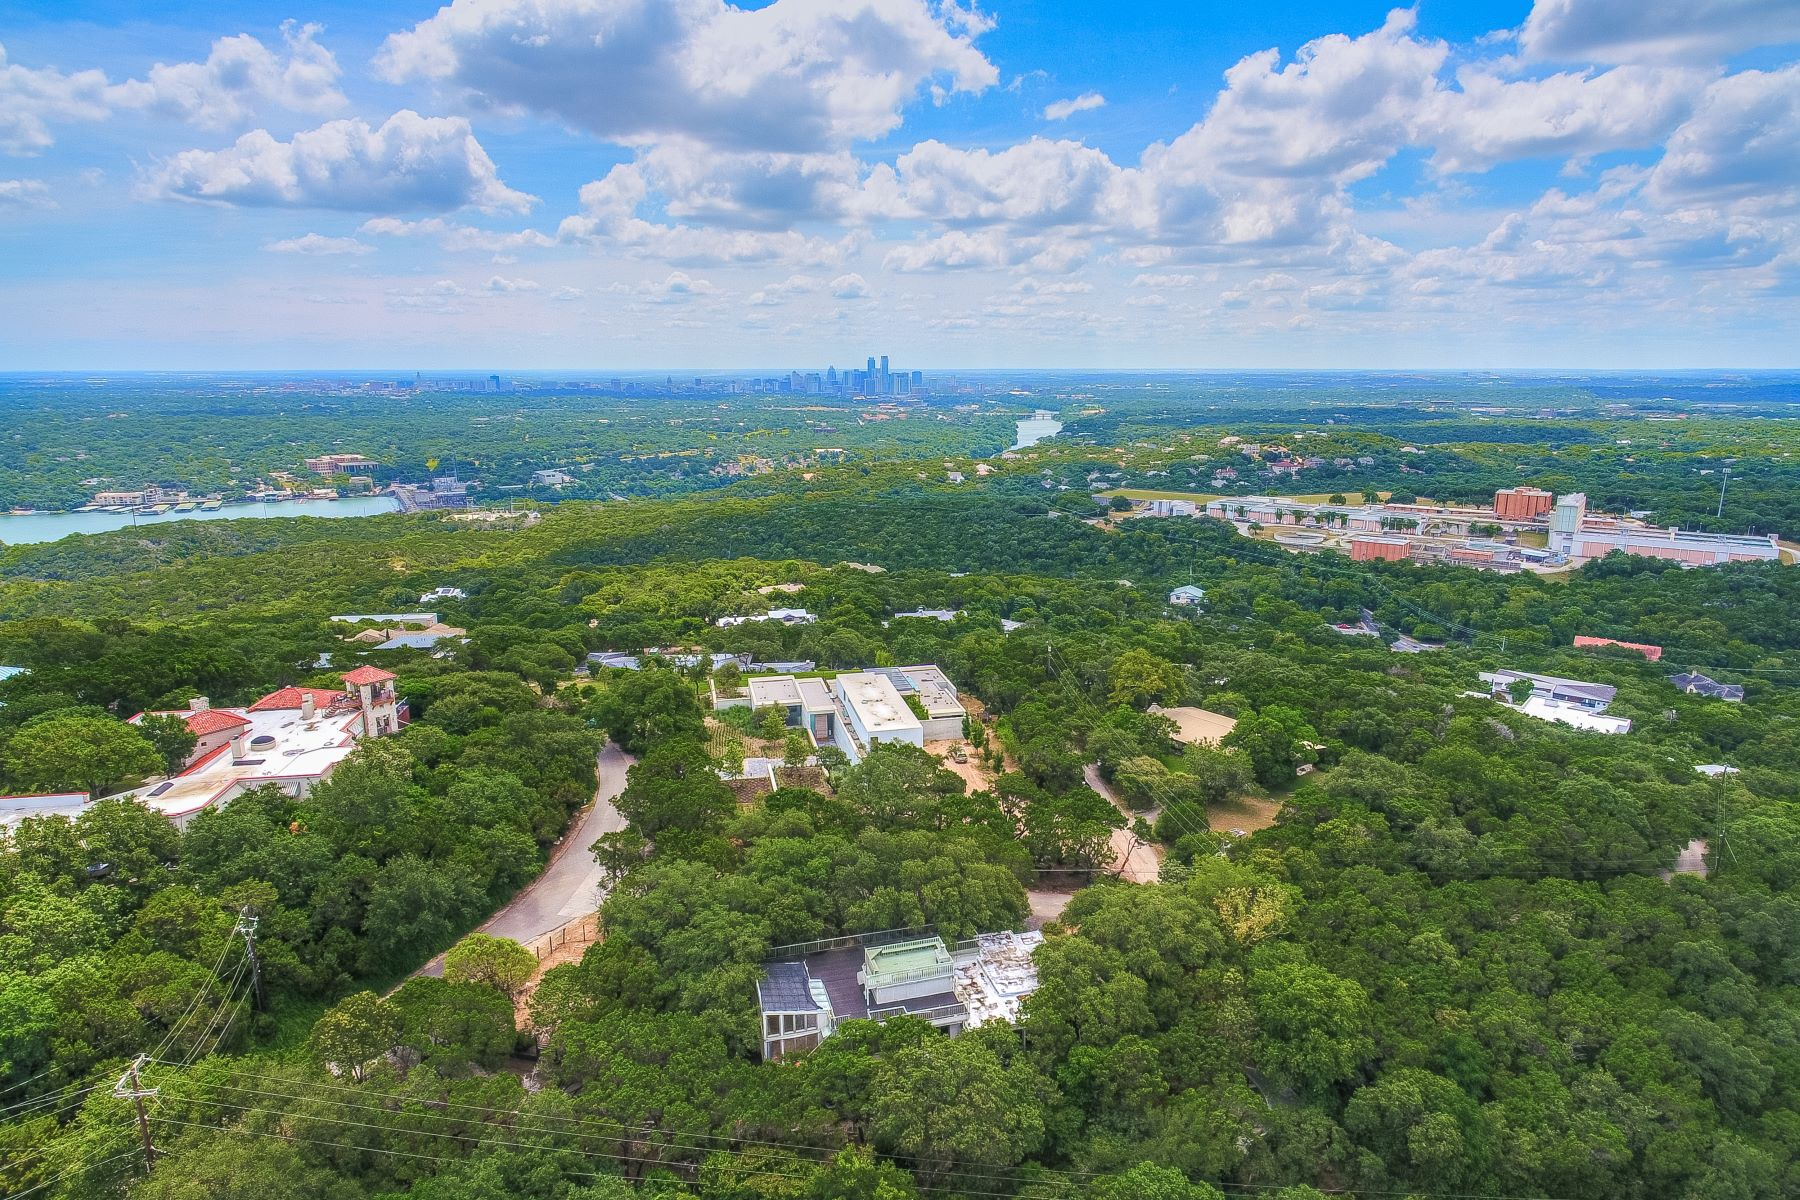 Terreno por un Venta en Gorgeous .62 acre lot in the heart of West Lake Hills 305 Skyline Drive, West Lake Hills, Texas 78746 Estados Unidos